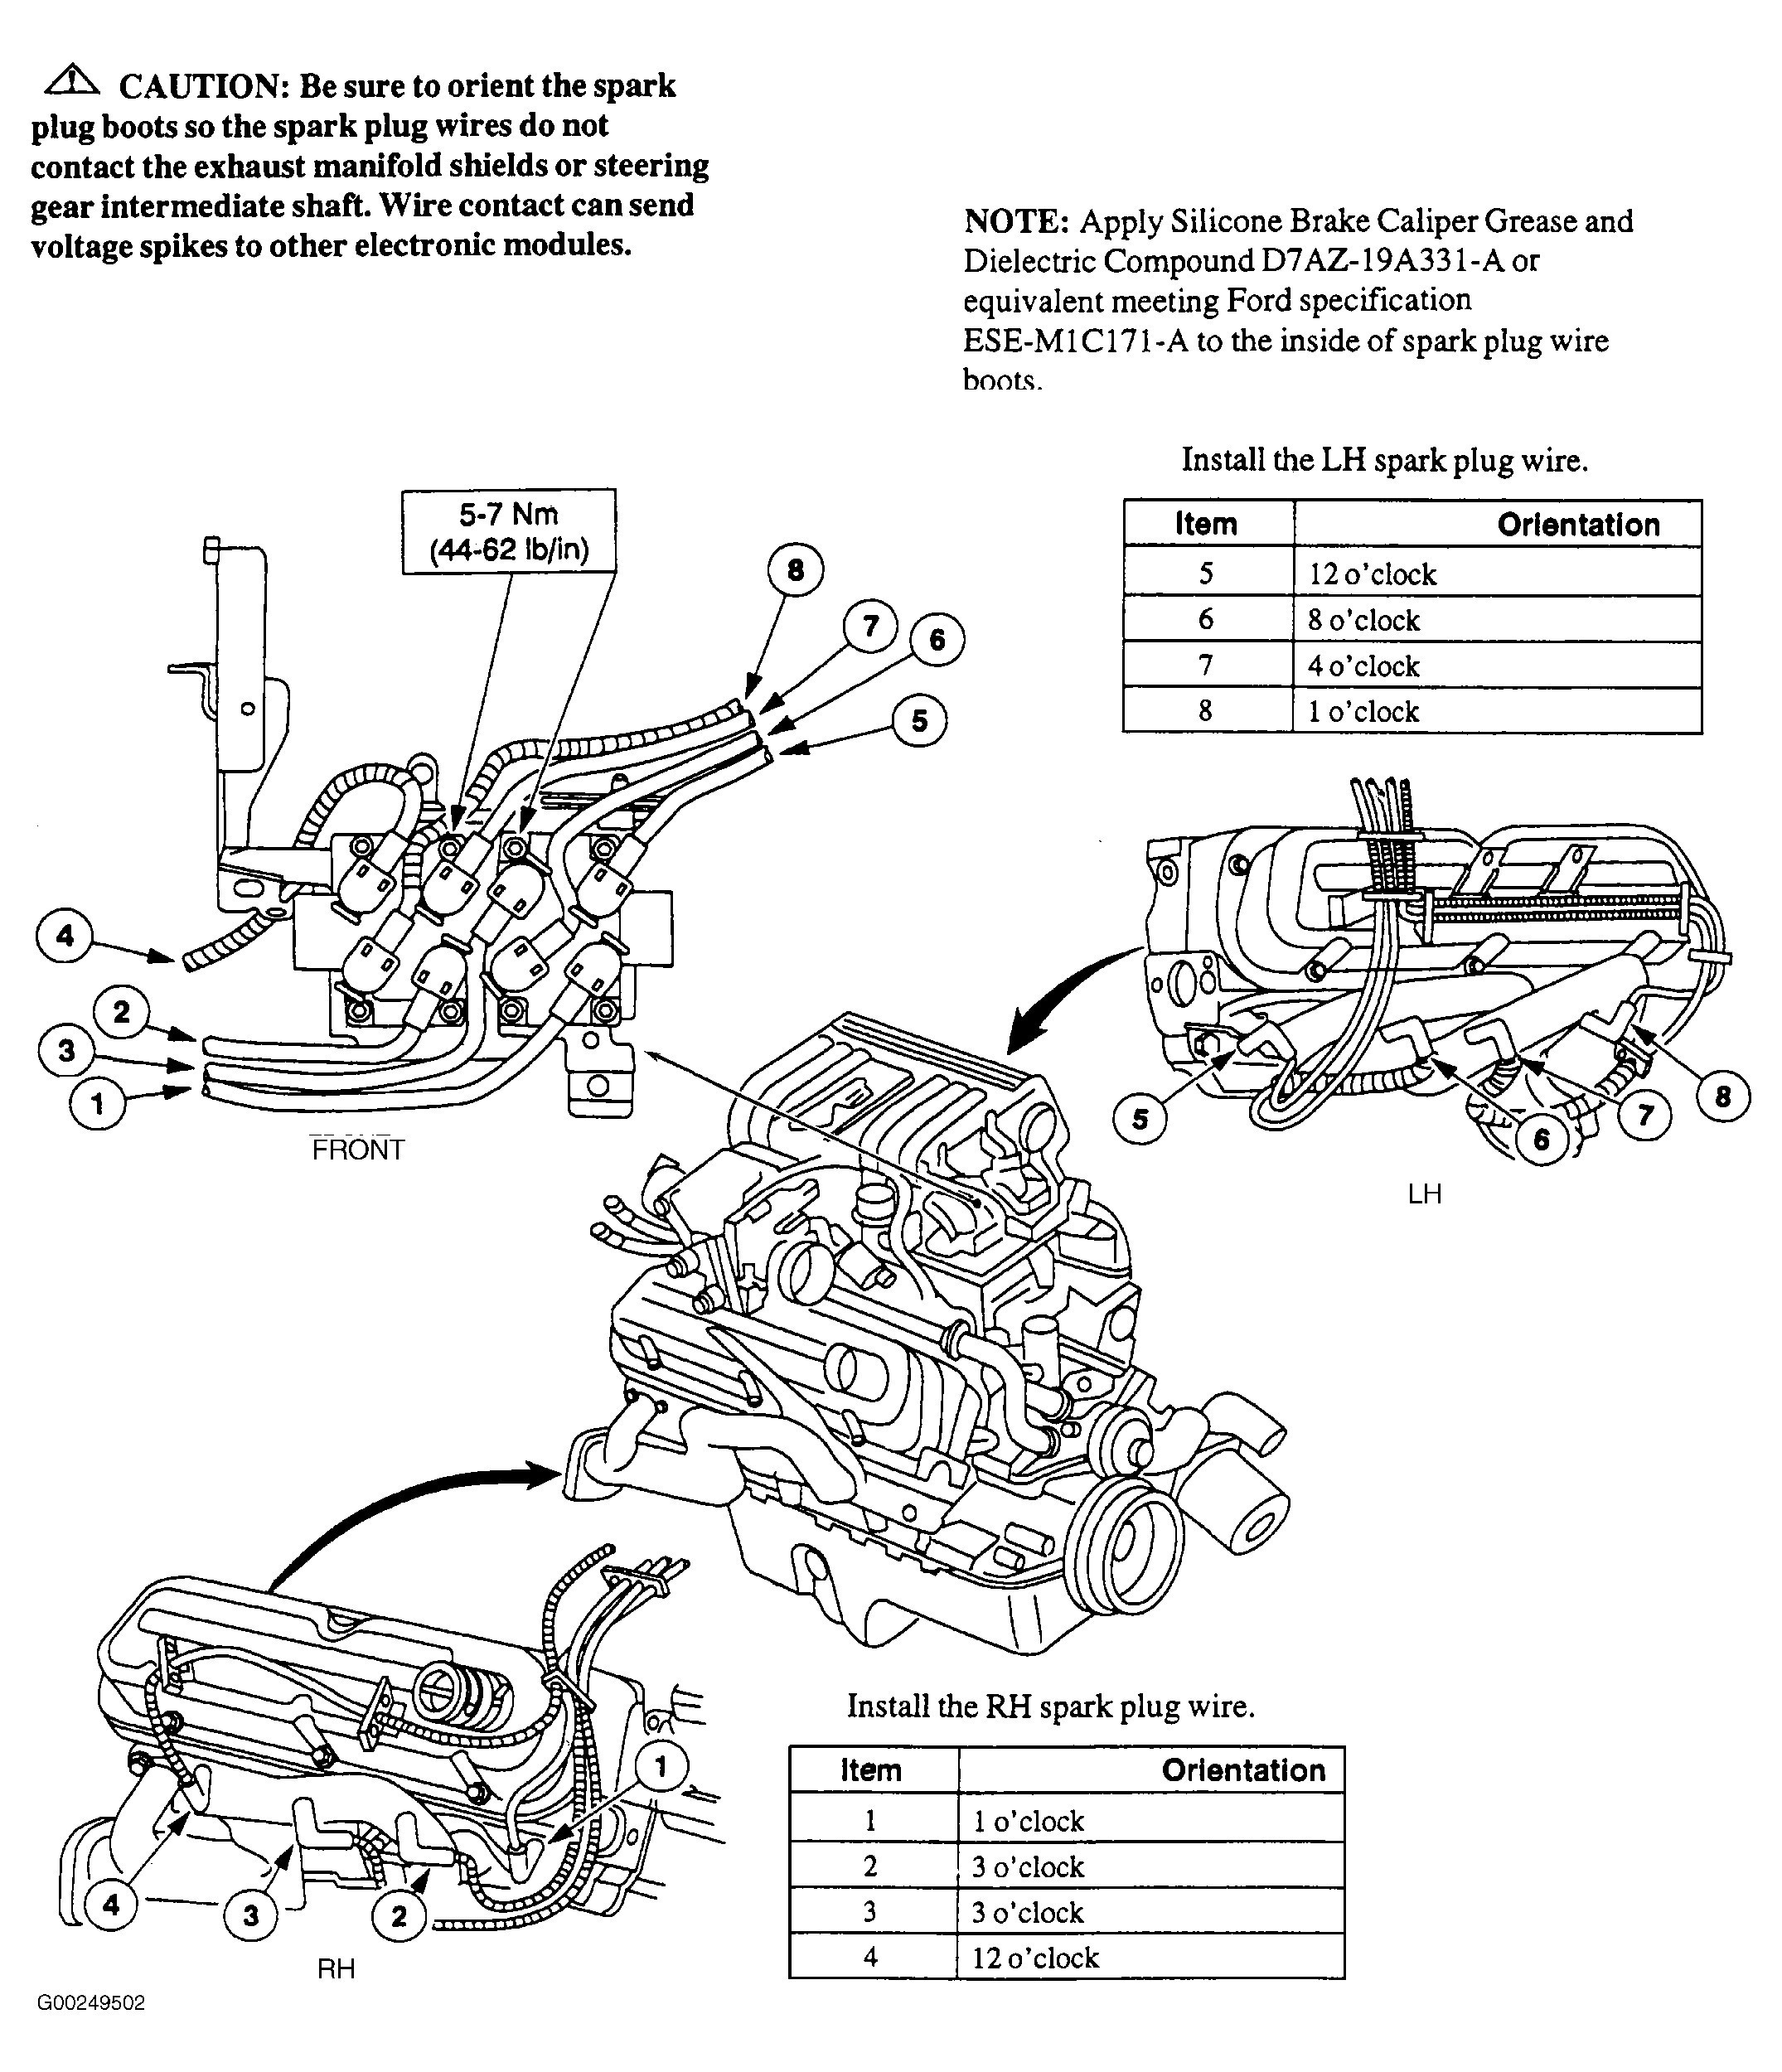 2004 ford Escape Engine Diagram 2000 ford Explorer Parts Diagram Trusted Wiring Diagram Of 2004 ford Escape Engine Diagram